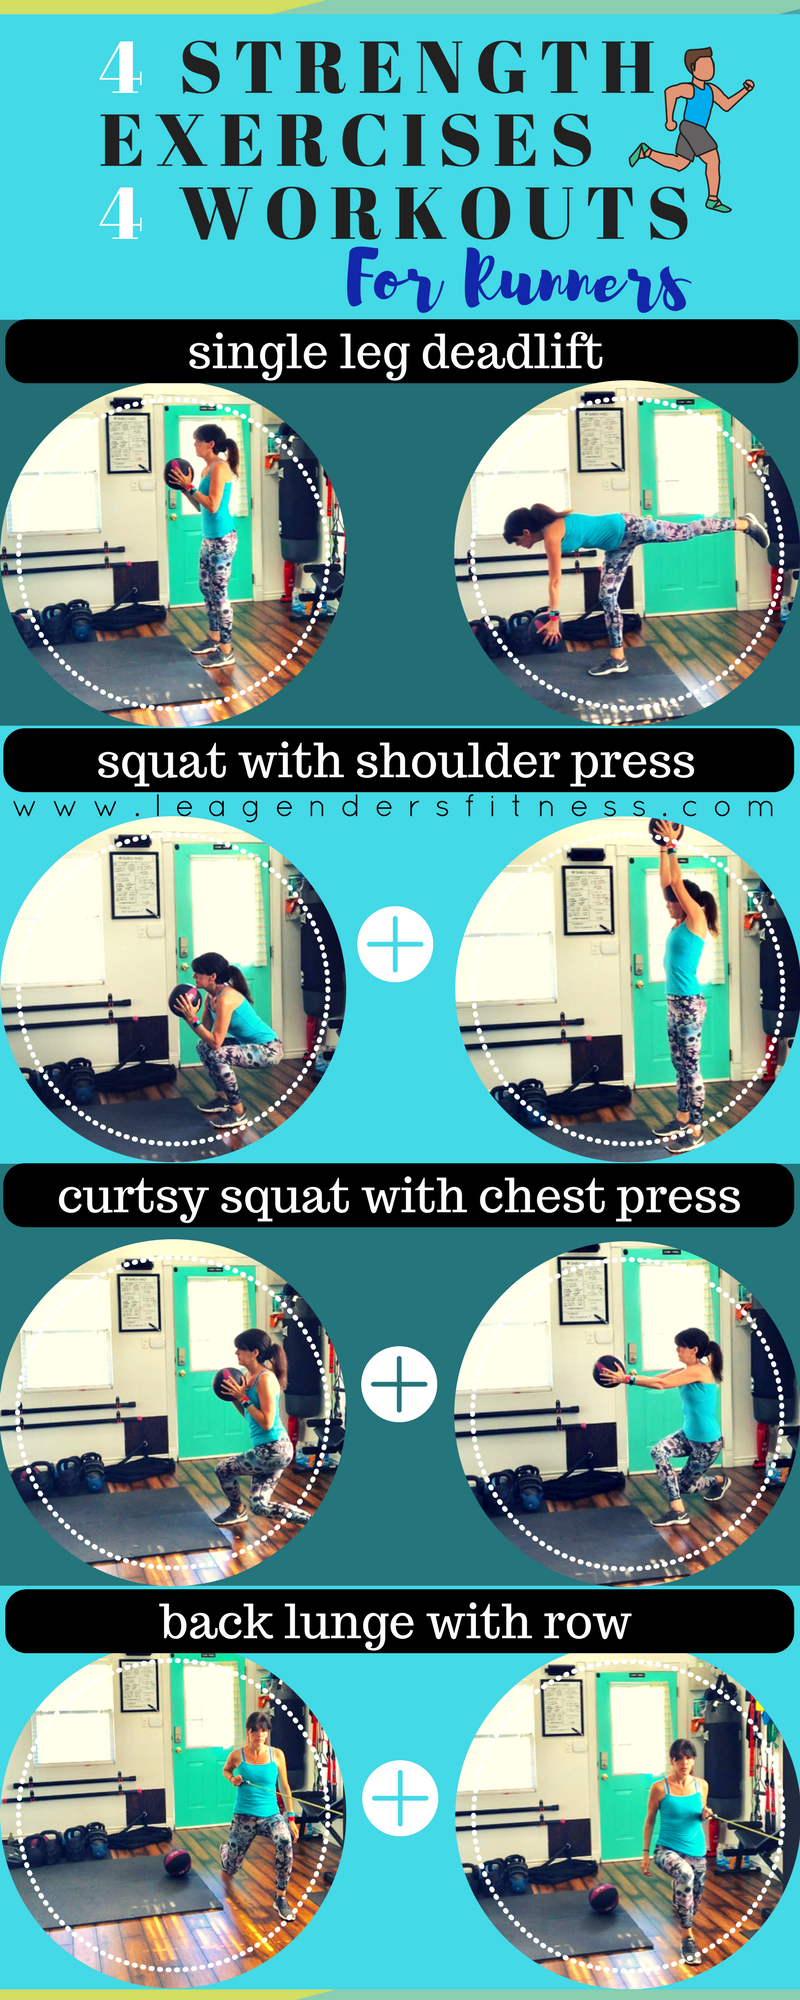 download a free printable PDF of this four exercises for runners workout